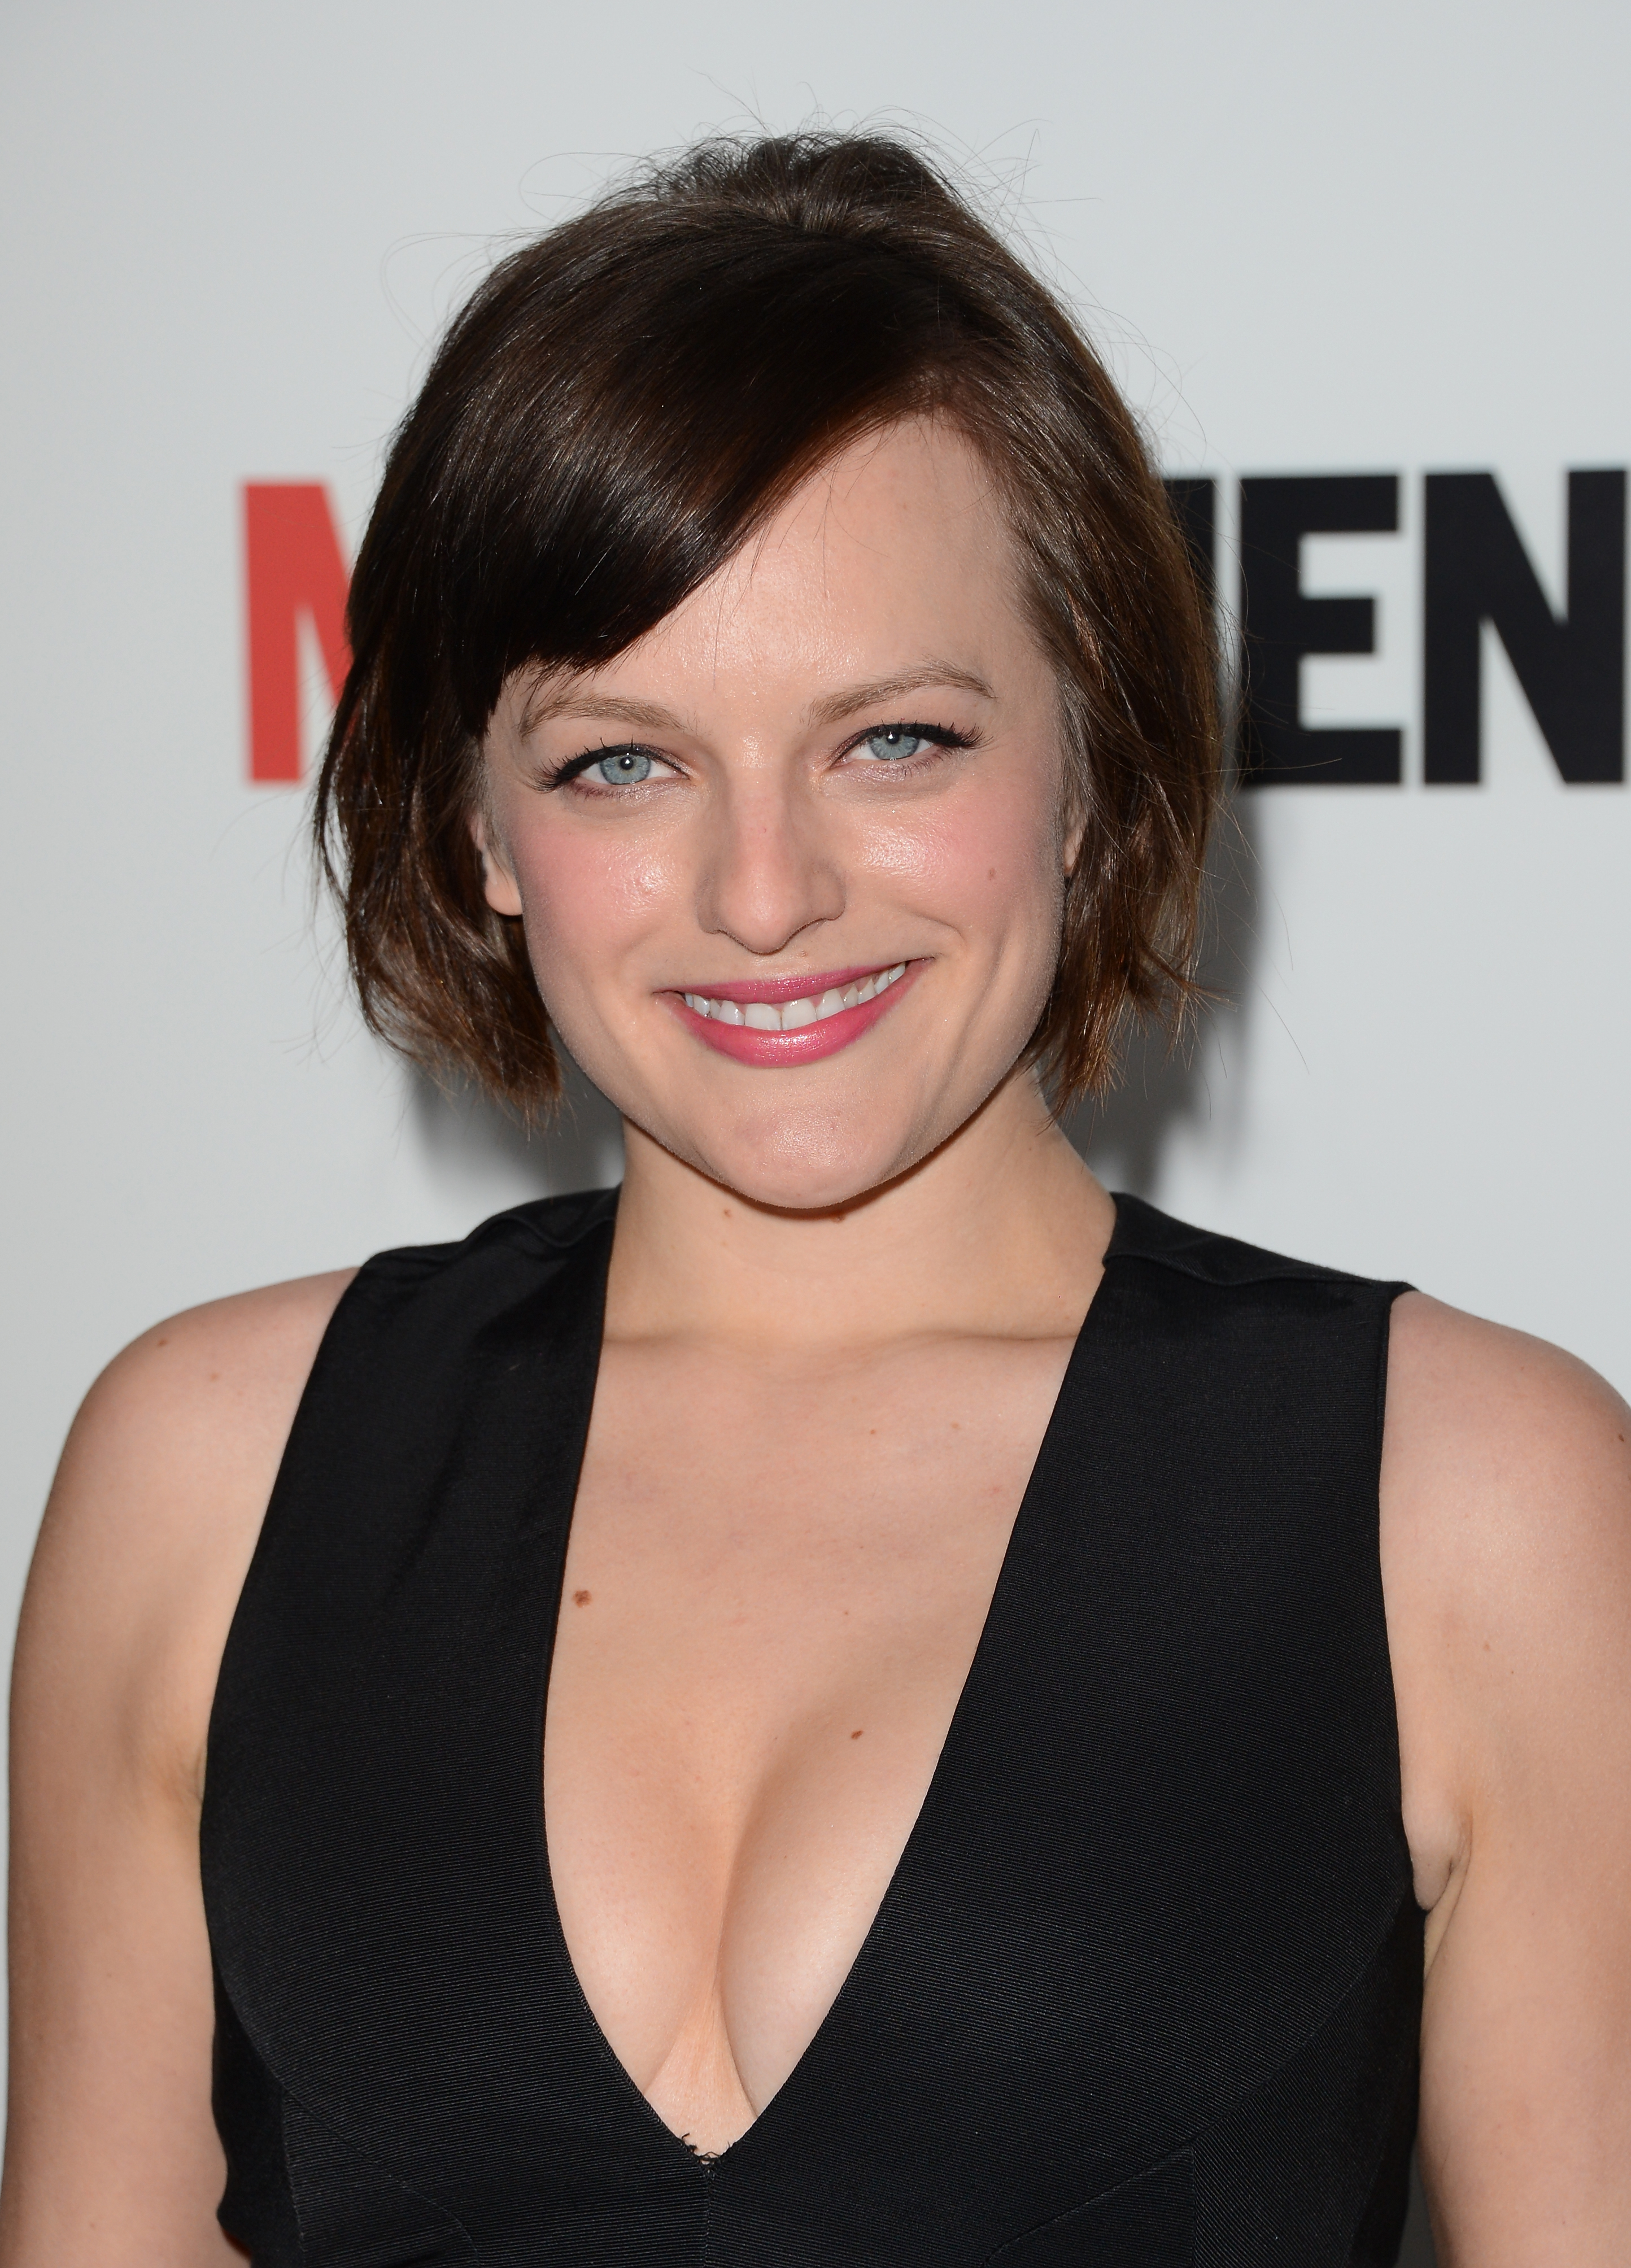 The 35-year old daughter of father Ron Moss and mother Linda Moss, 160 cm tall Elisabeth Moss in 2018 photo